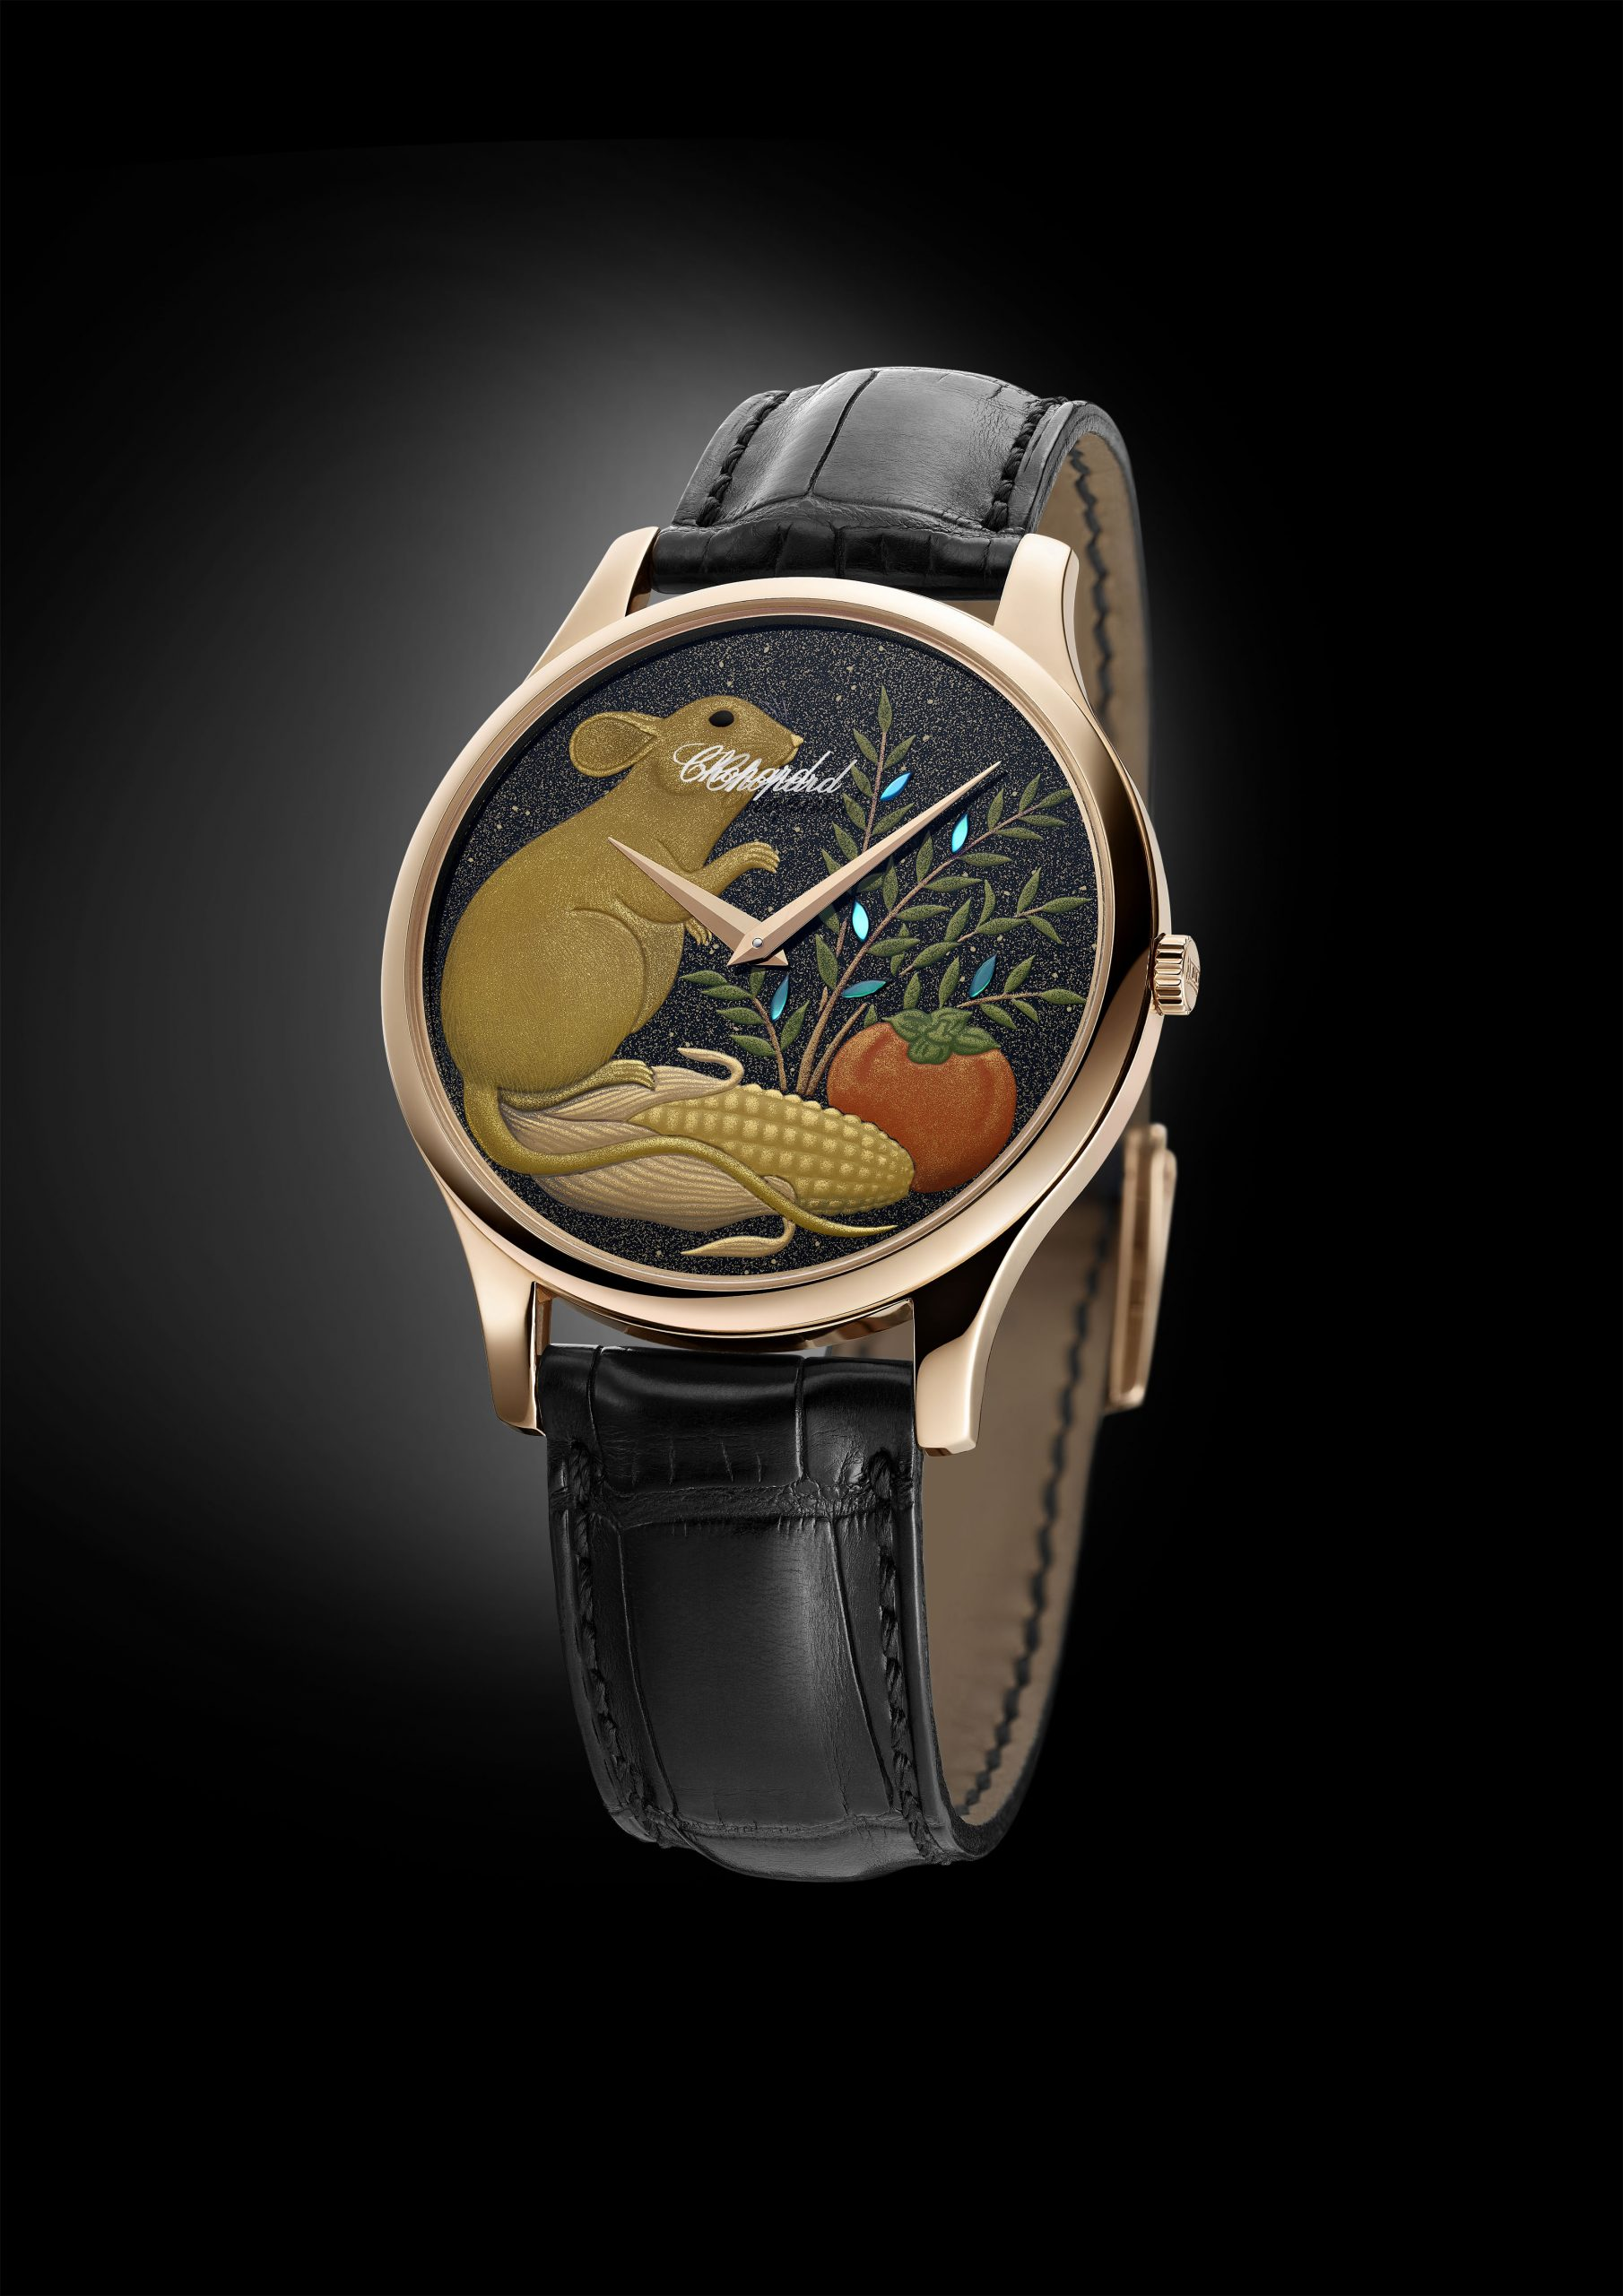 Chopard Year of the Rat watch.